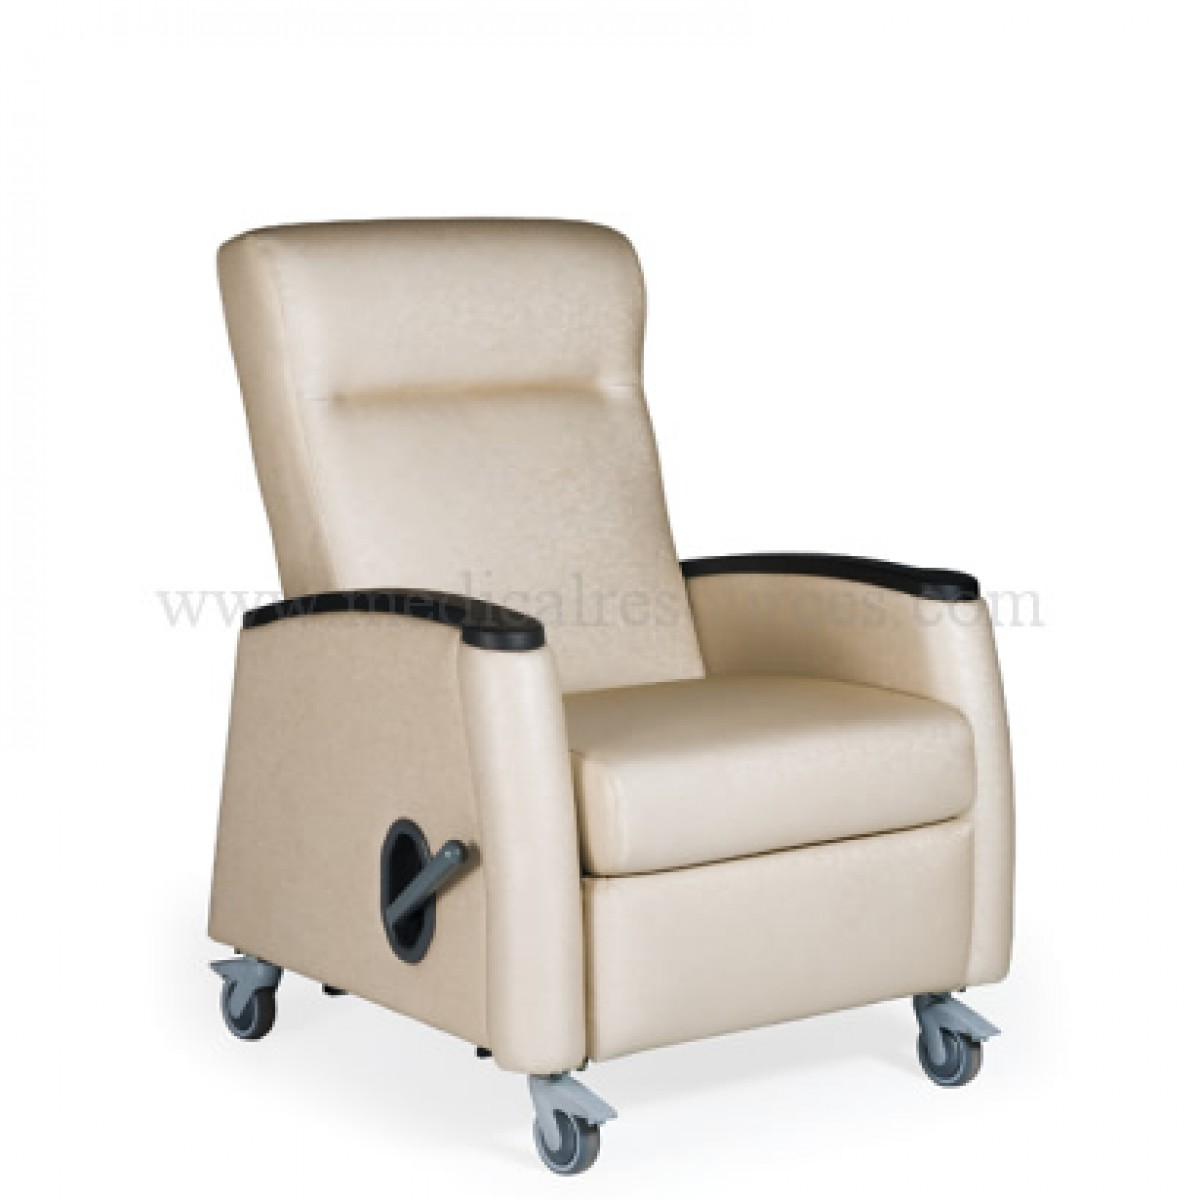 Product Features Patented La-Z-Boy mechanism allows the seat and back to move together.